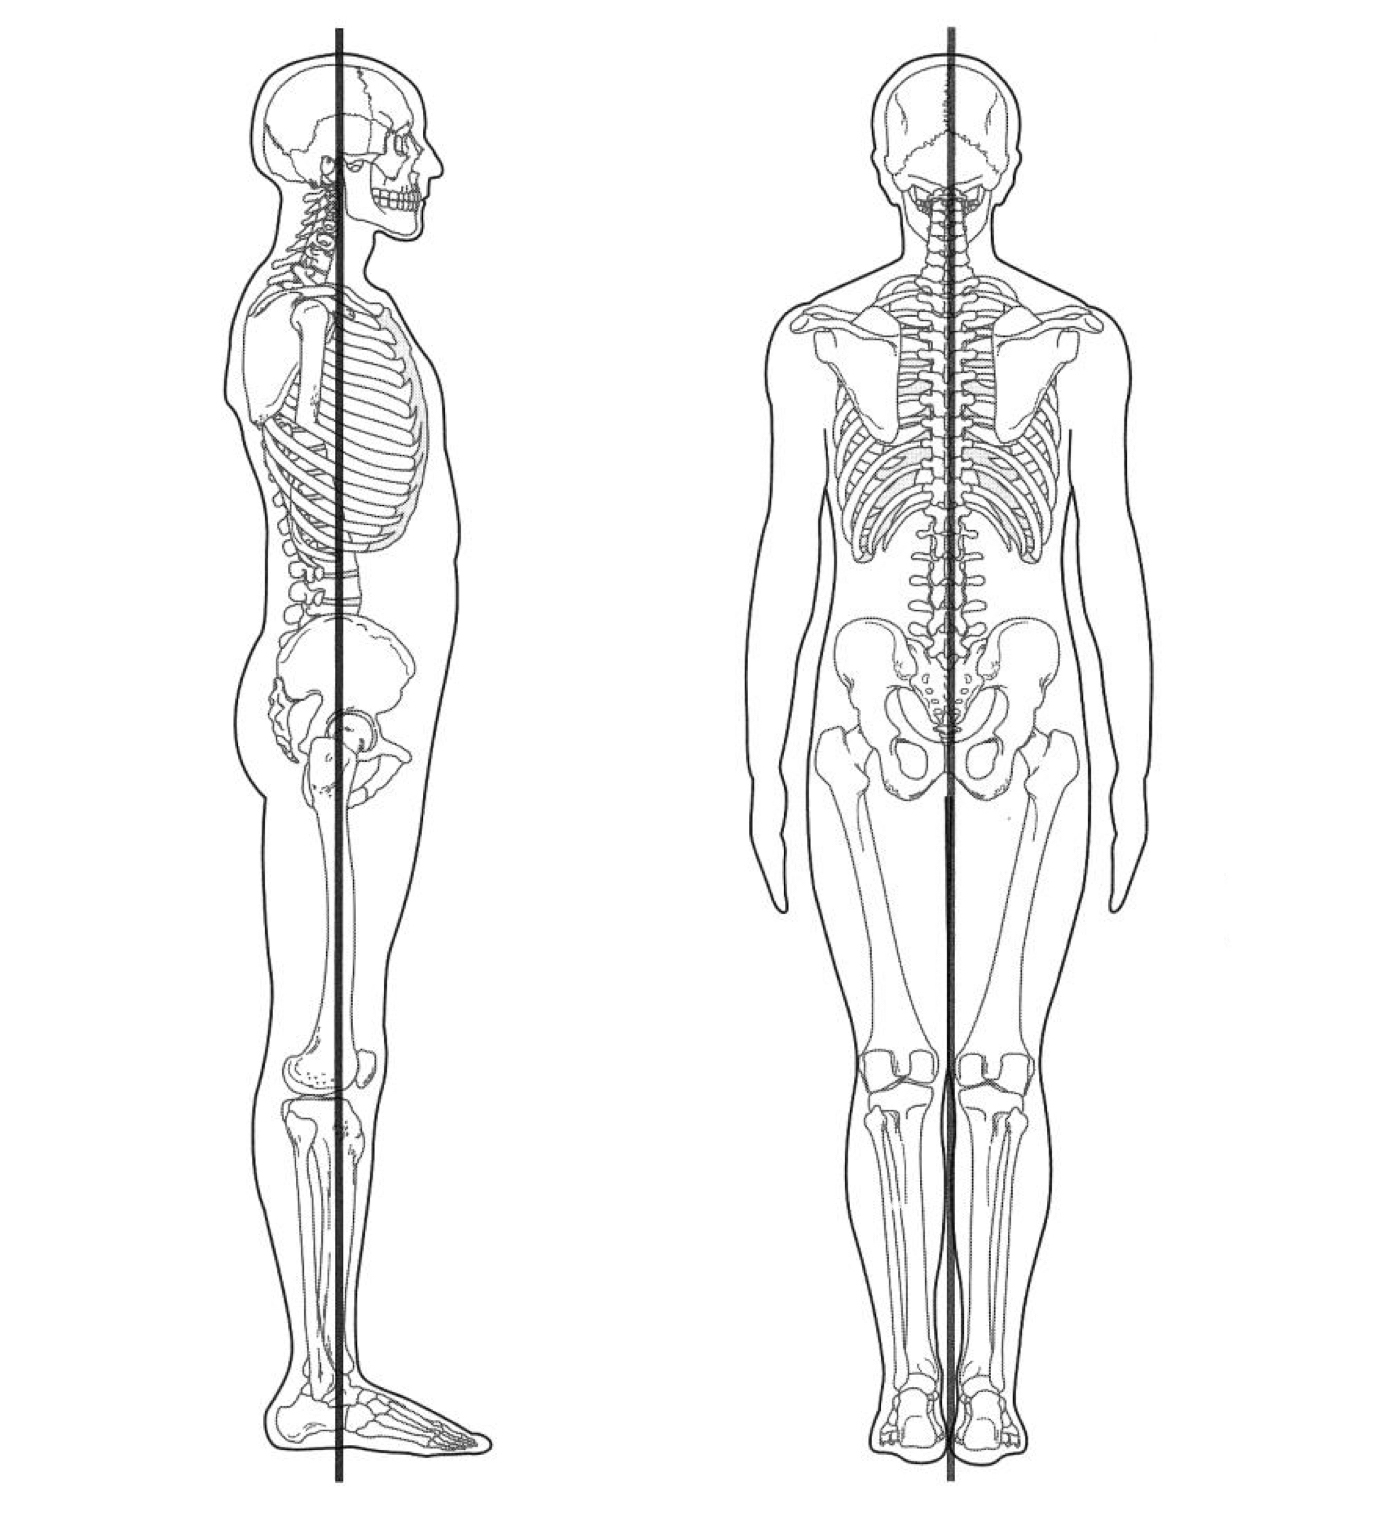 For Proper posture, your body should align